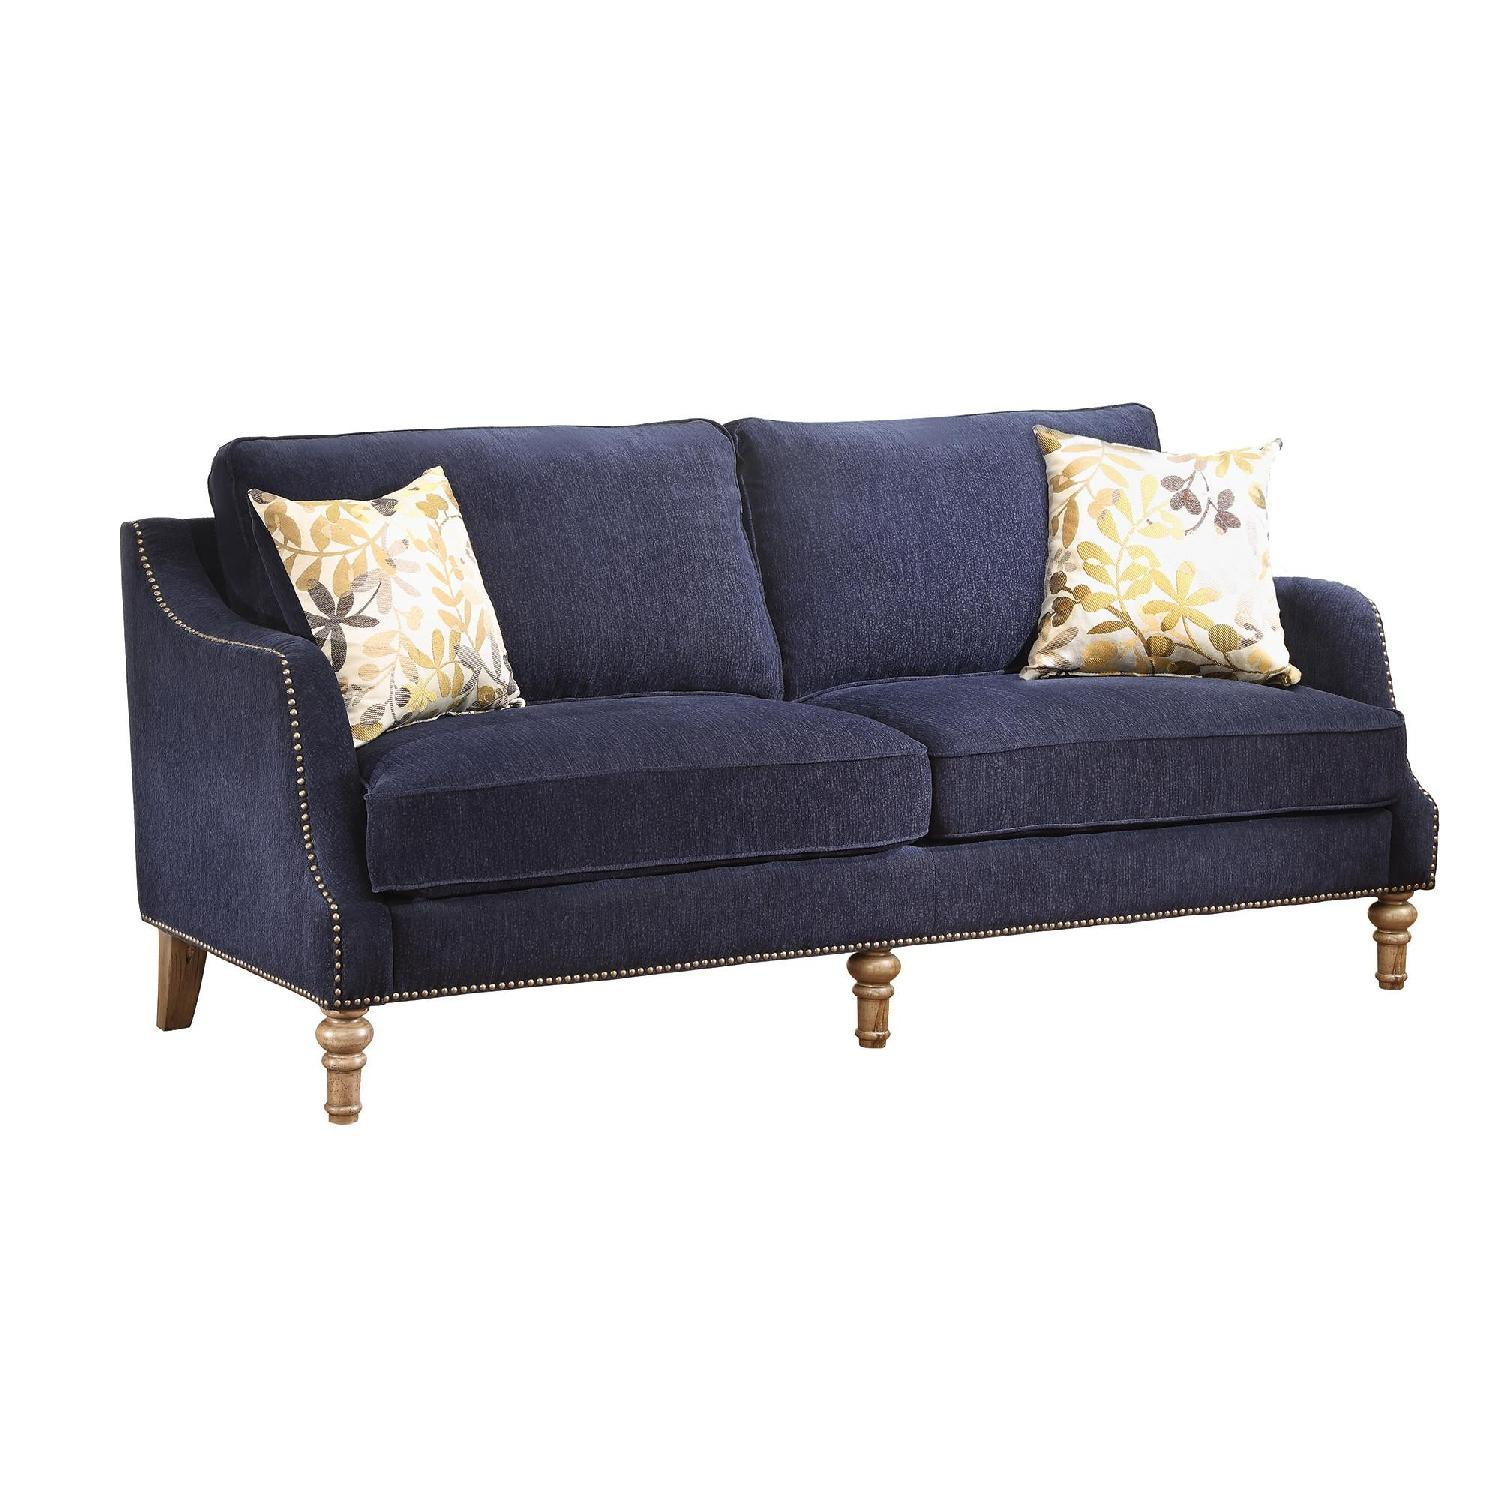 Sofa in Rich Ink Blue Patterned Chenille Fabric w/ Feather Blend Topped Seating & Antique Wood Legs